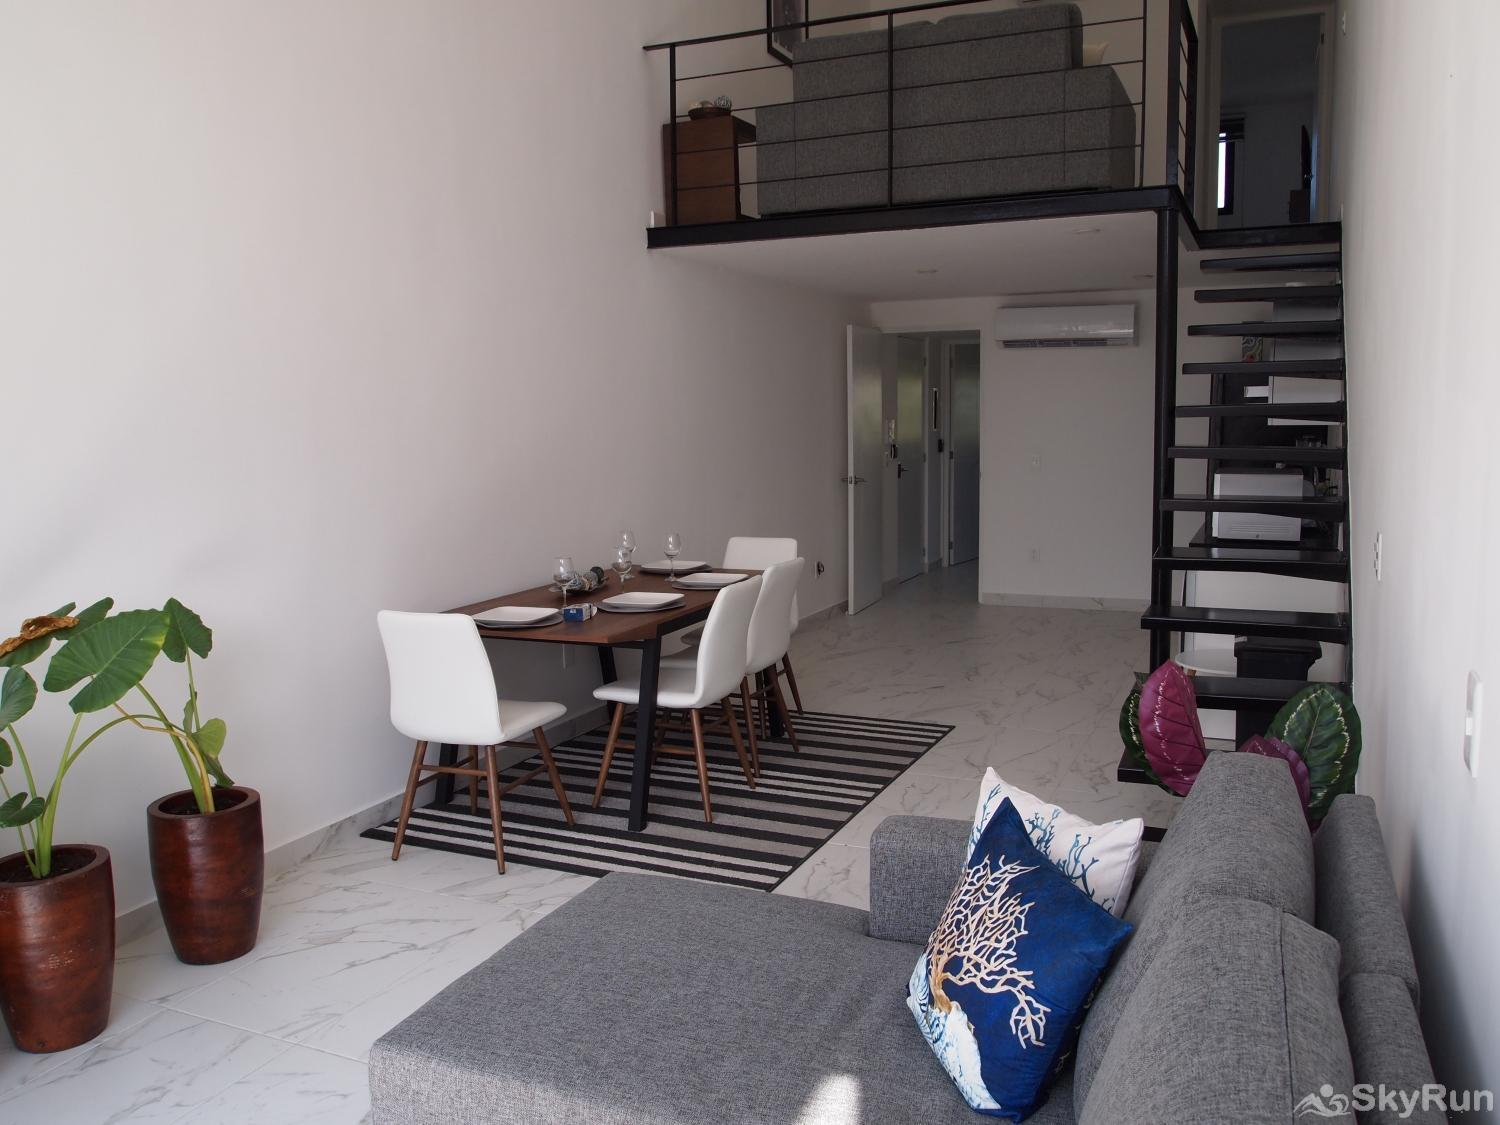 New PRME LoFt 303 Downtown Playa del Carmen Loft with 2 Floors